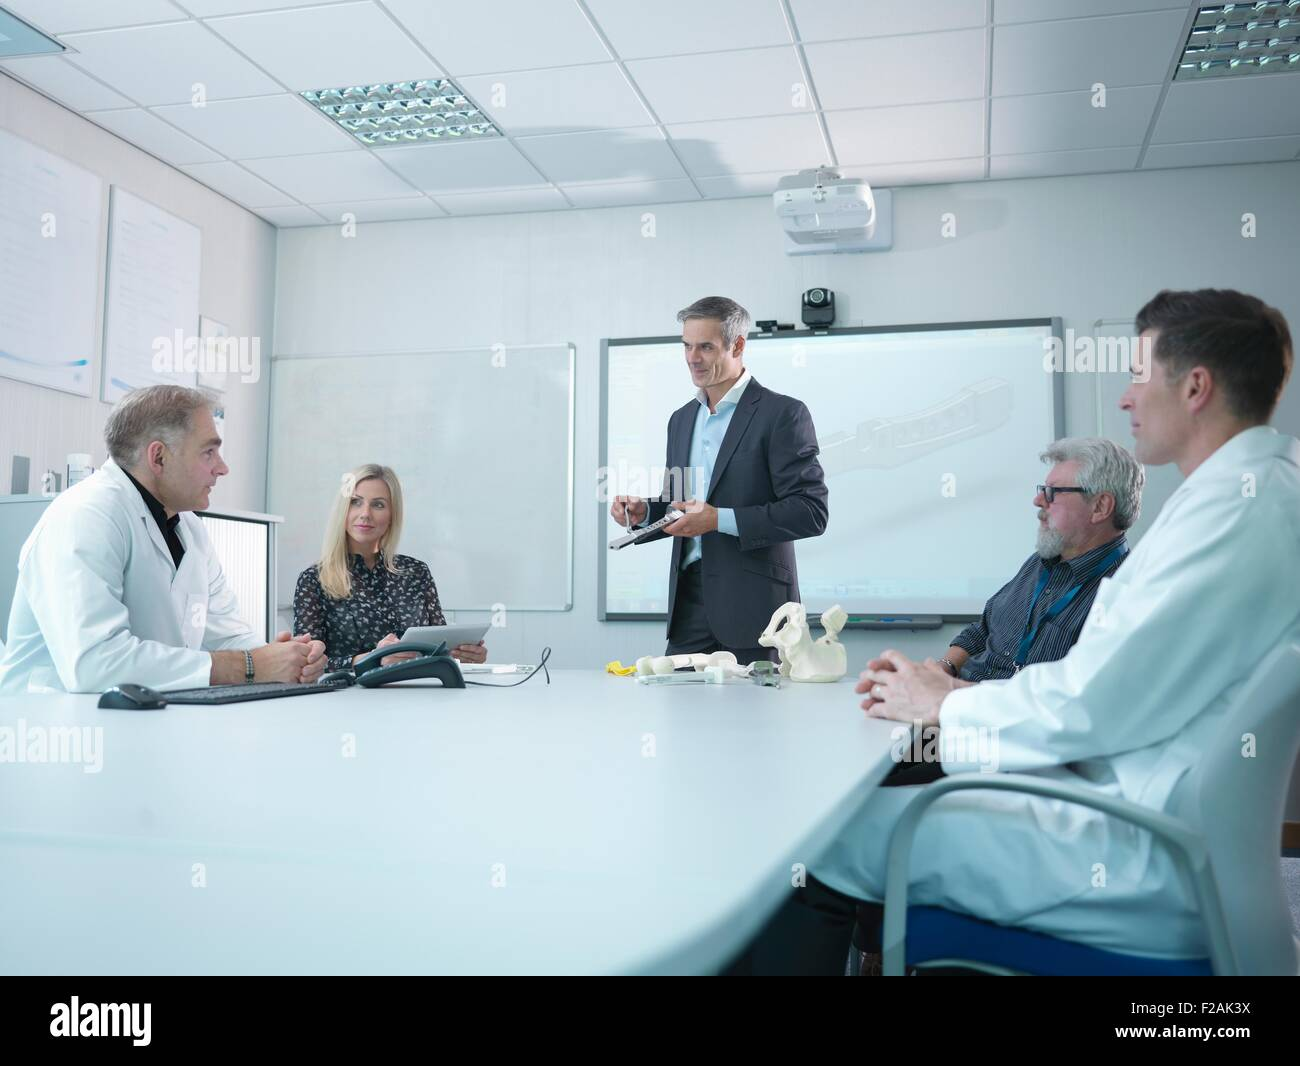 Medical product designers in presentation about orthopaedic product designs - Stock Image